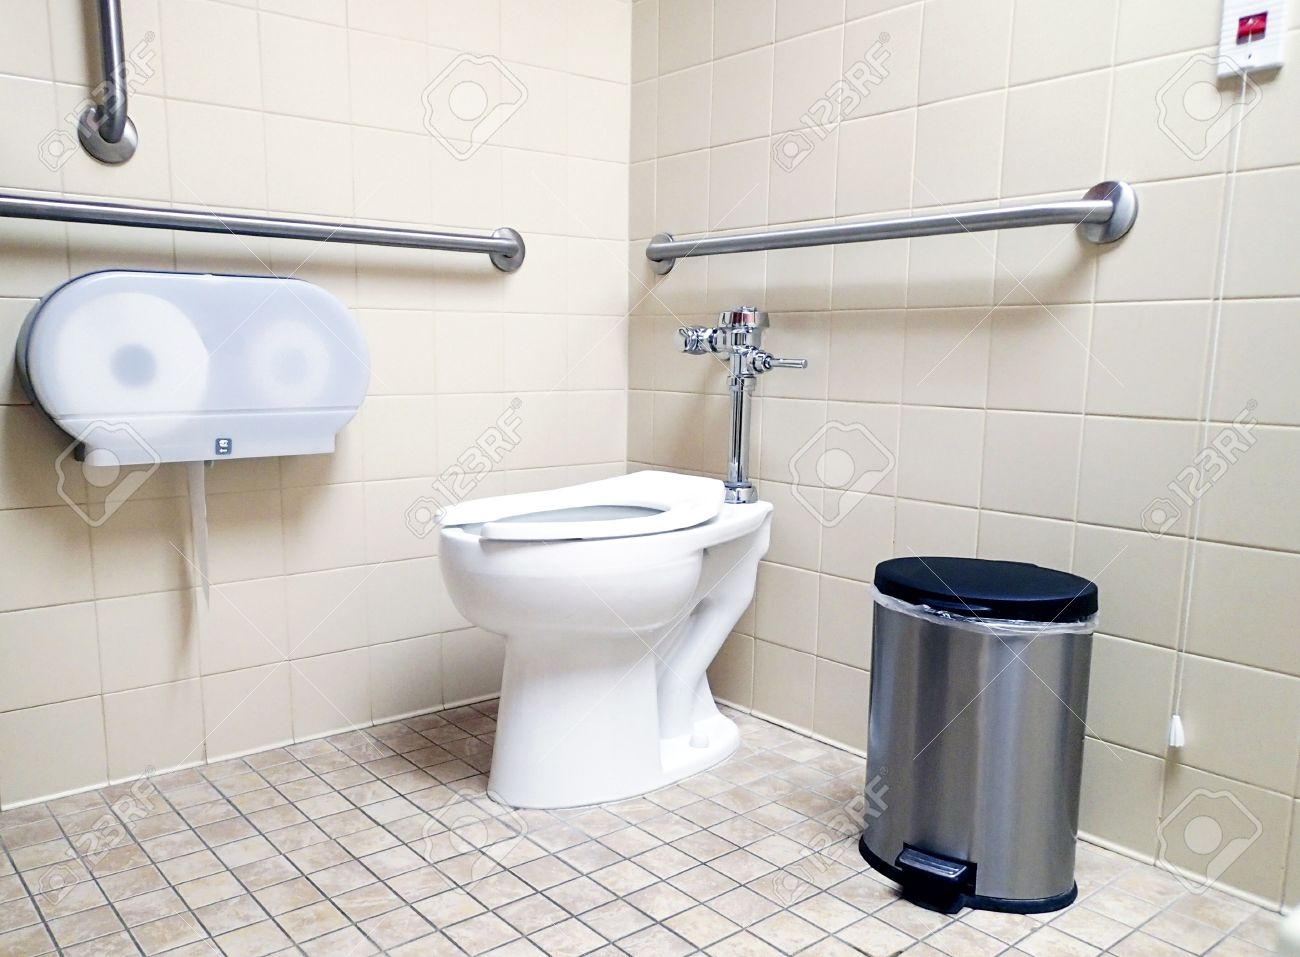 Modern Handicapped Bathroom For The Disabled, With Grab Bars And Wheelchair  Access. Stock Photo